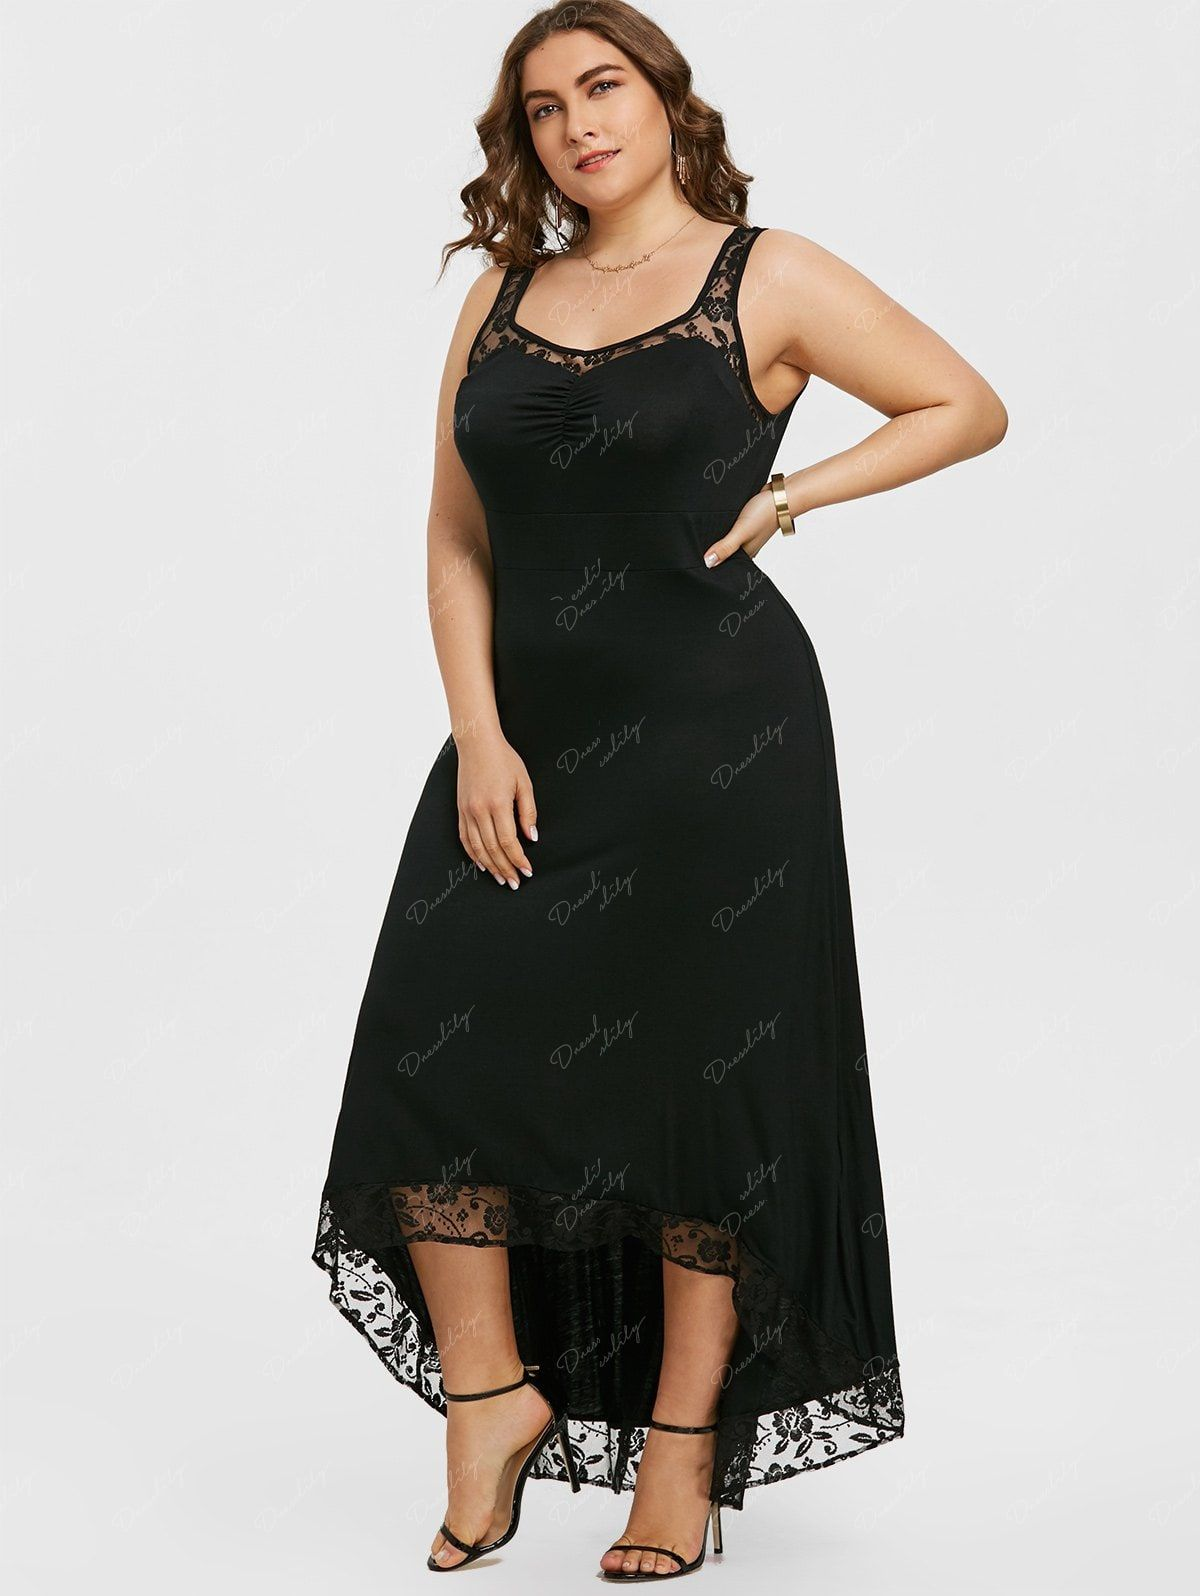 321d40645da7d High Low Plus Size Party Maxi Dress -  fall dresses to wear to a wedding